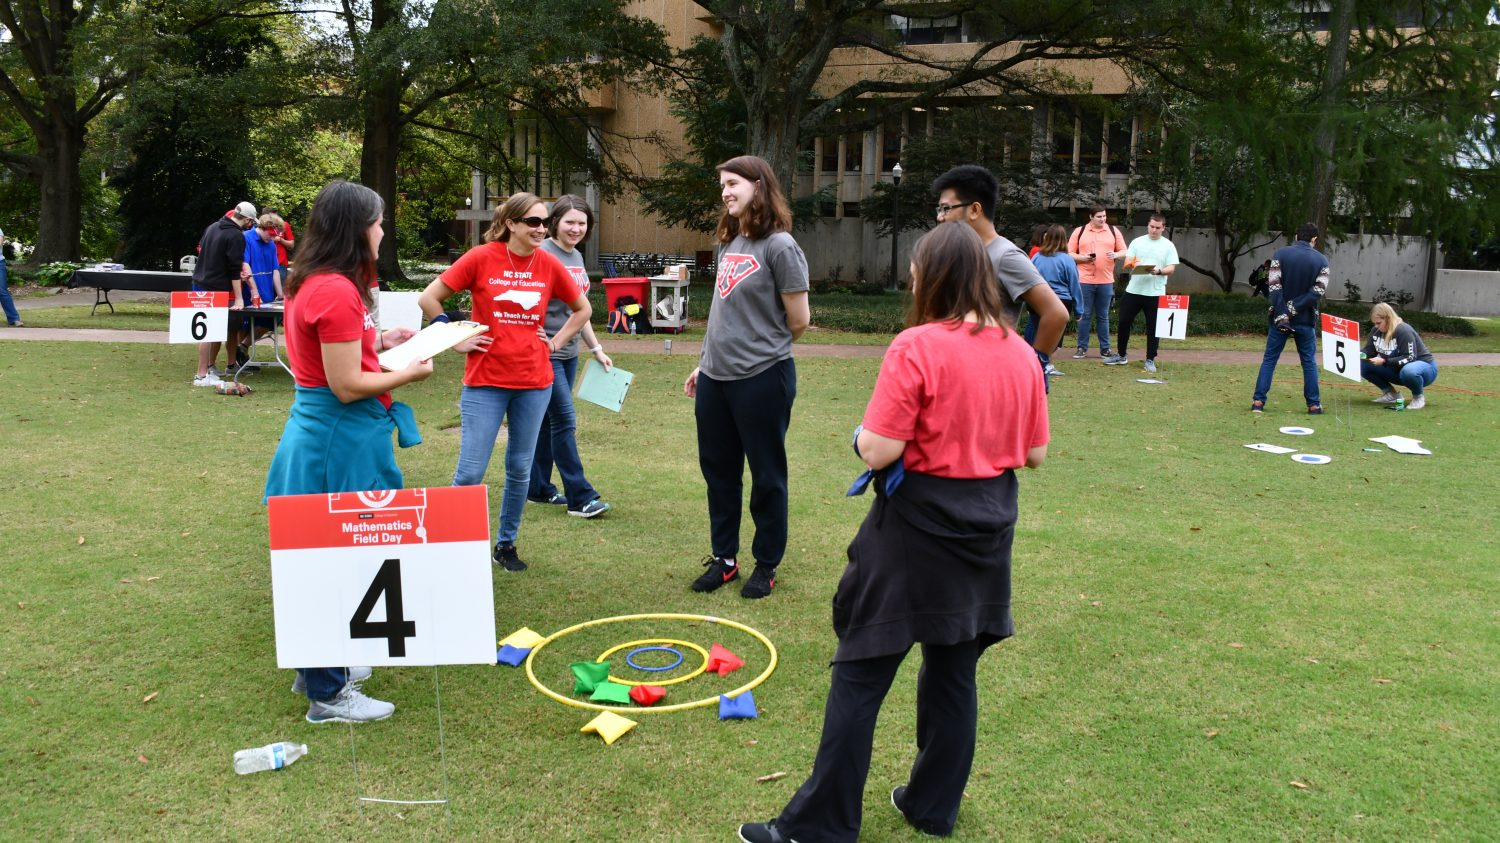 Students participated in a bean bag toss activity during Mathematics Field Day